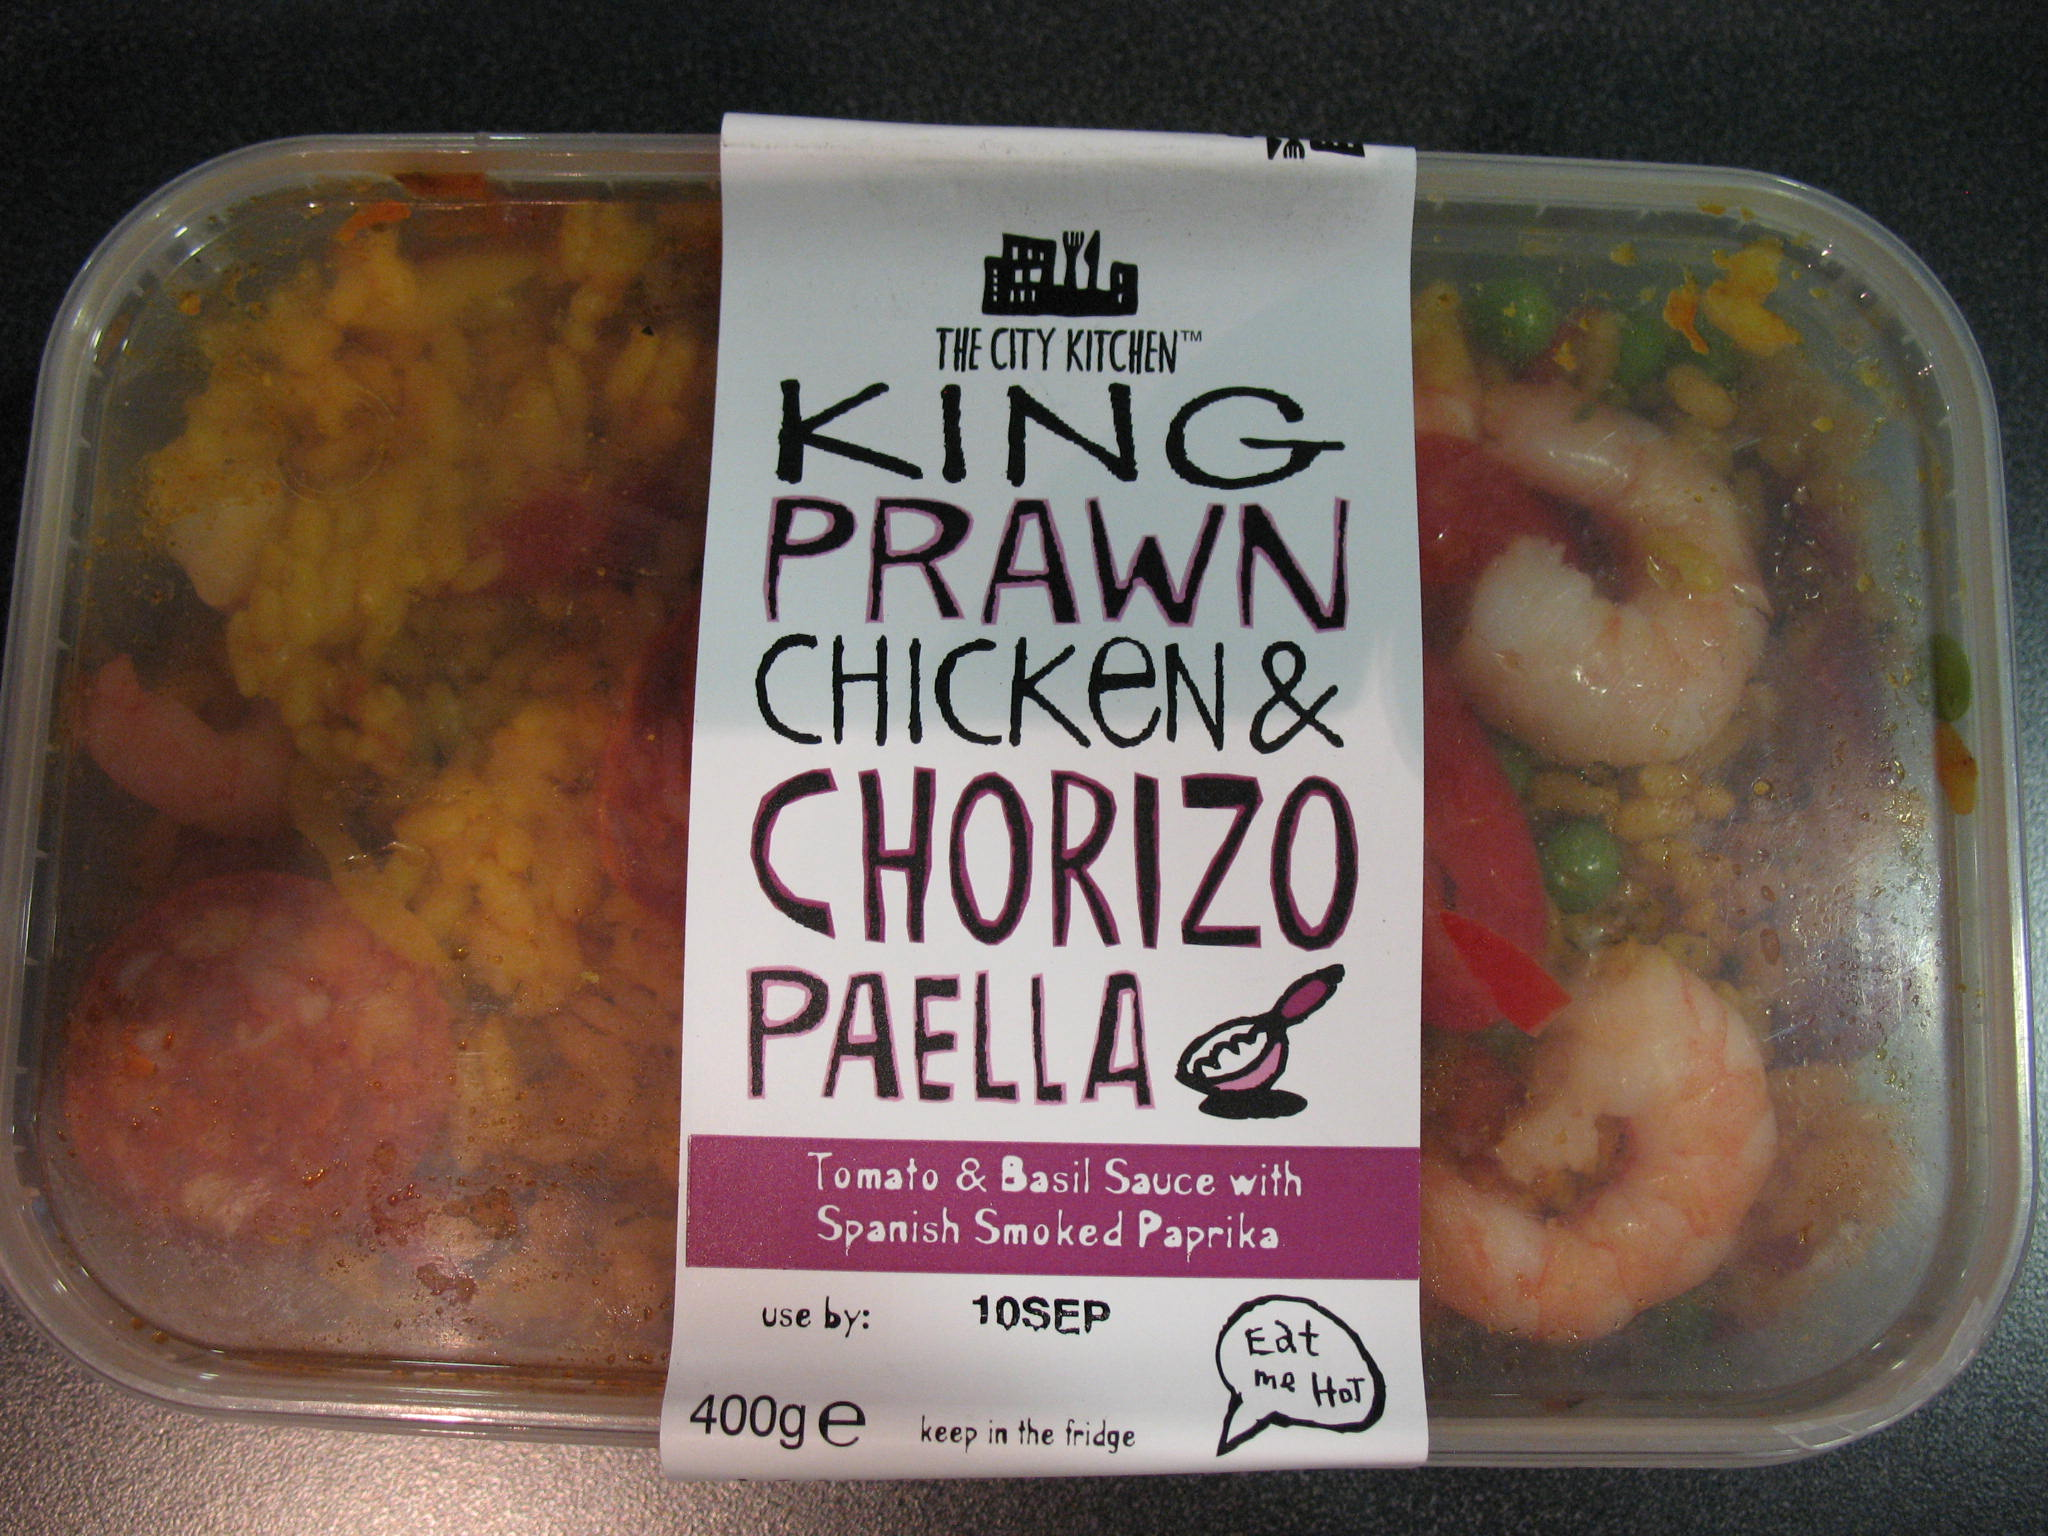 the-city-kitchen-king-prawn-chicken-and-chorizo-paella-1